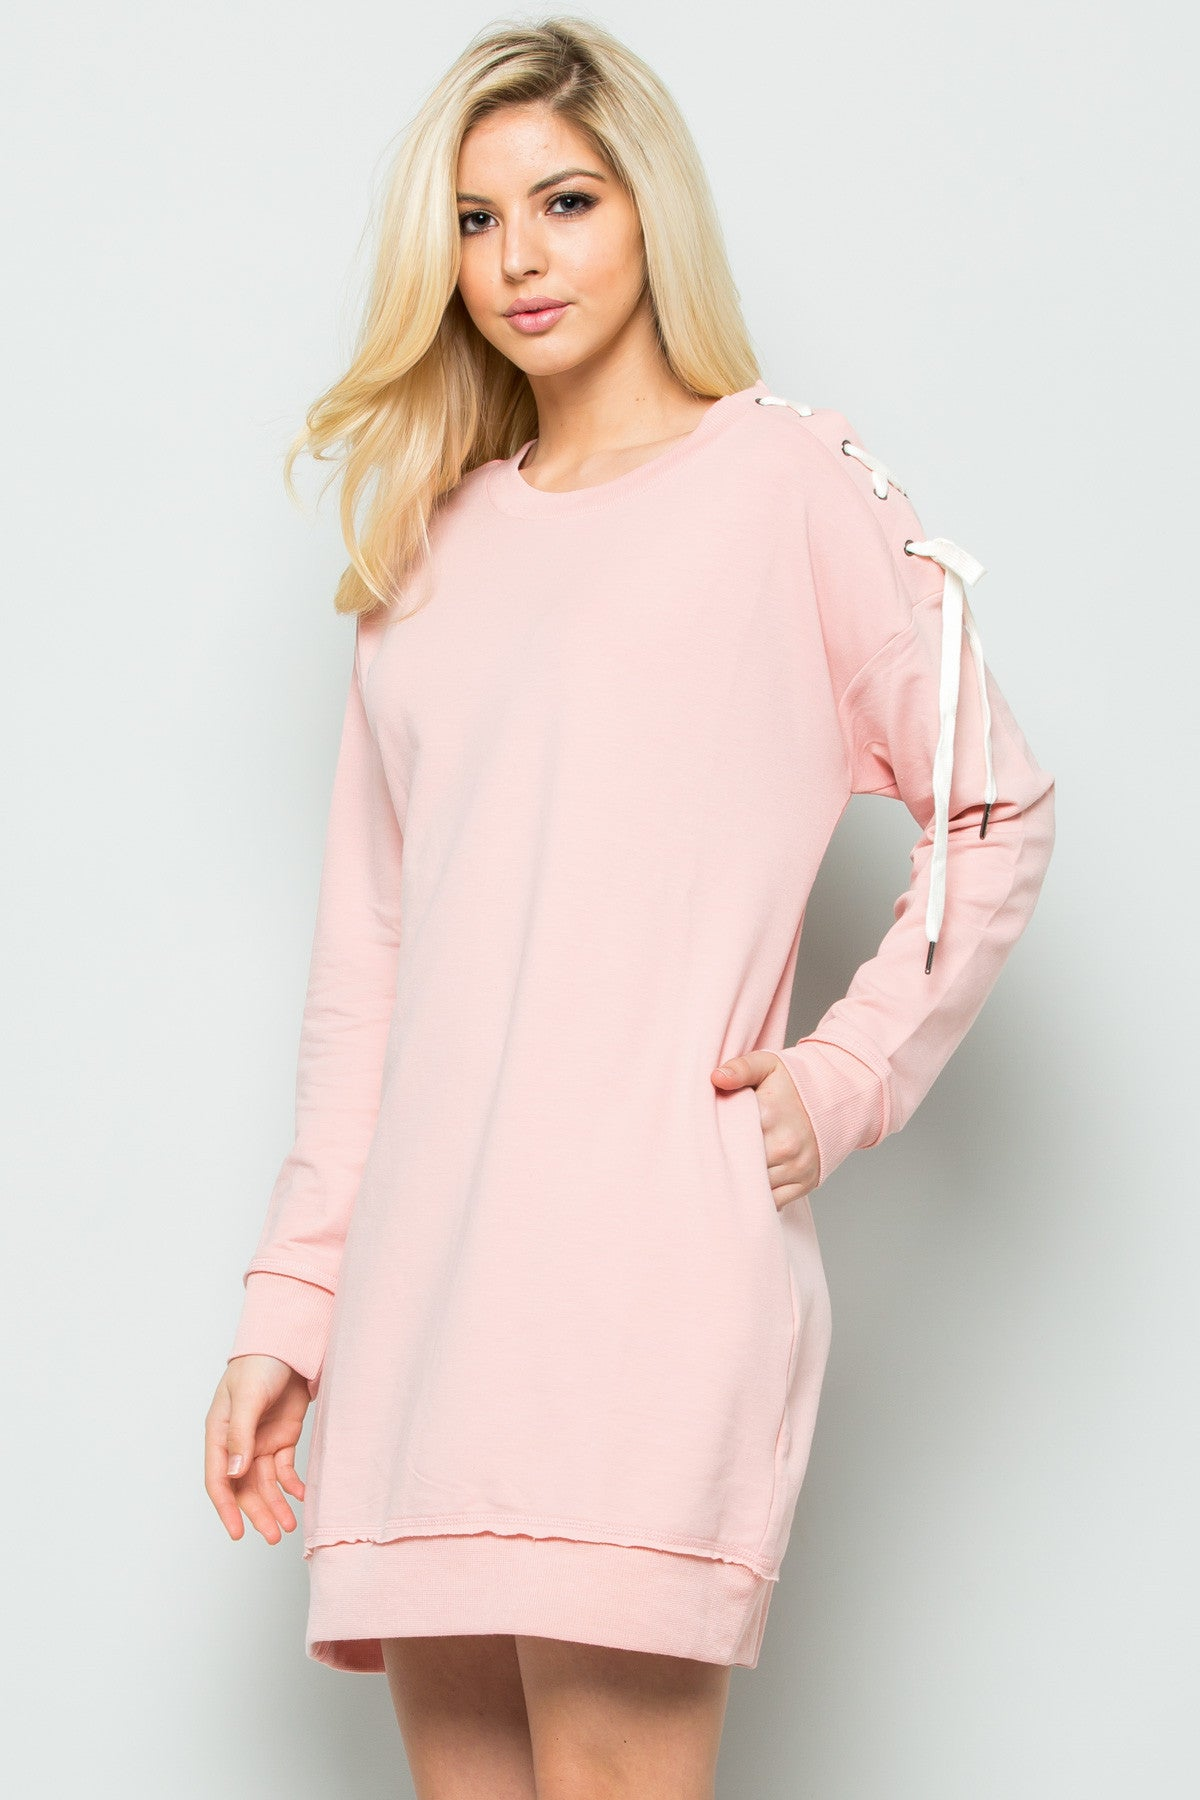 Shoulder Lace Up Sweater Dress in Blush - Dresses - My Yuccie - 6